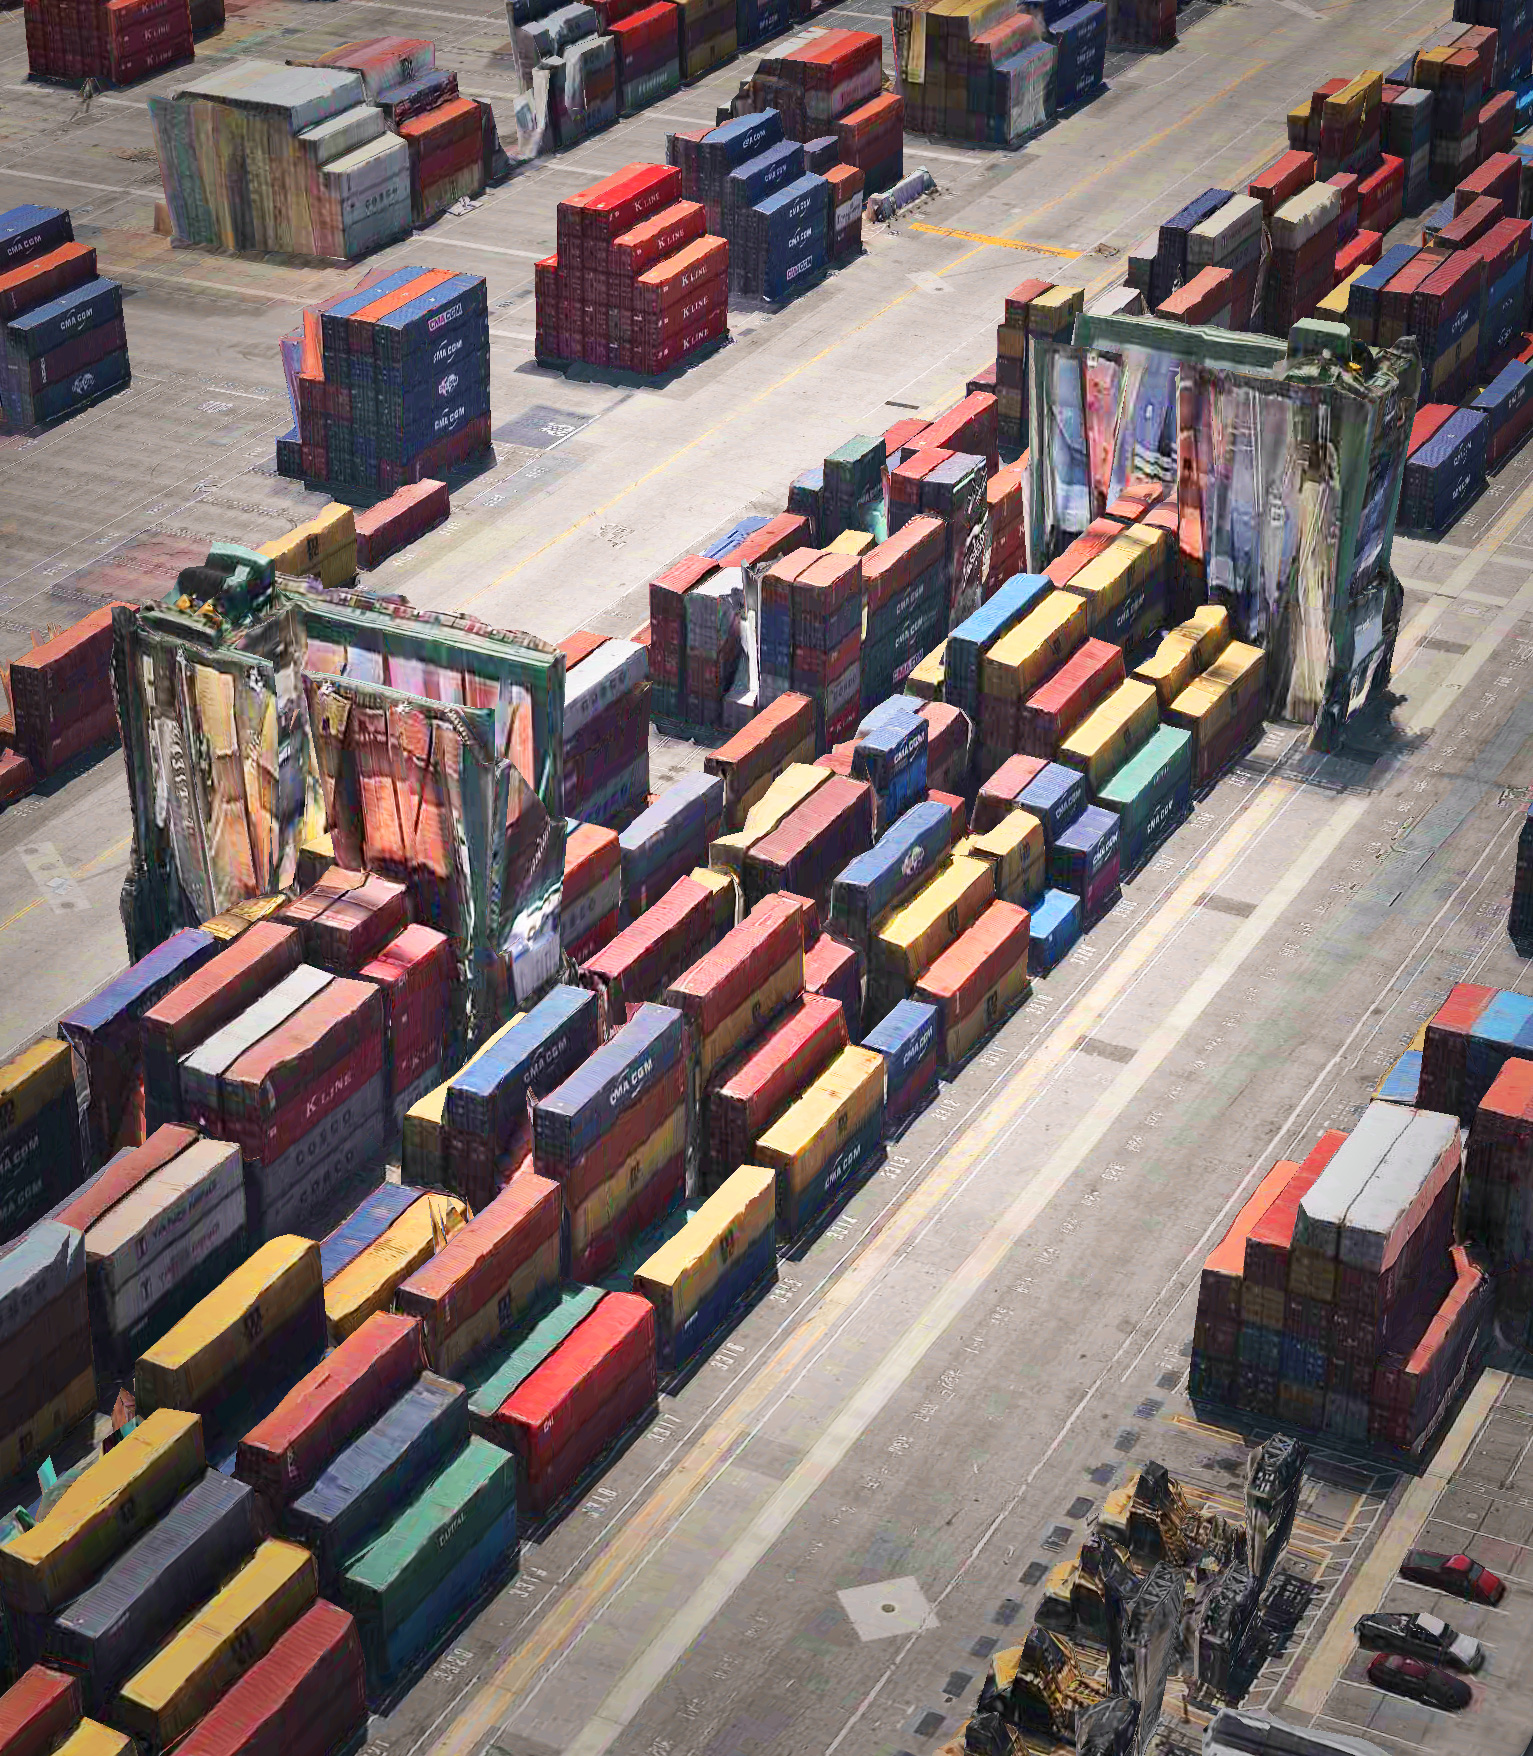 glitch_in_the_docks_08.jpg